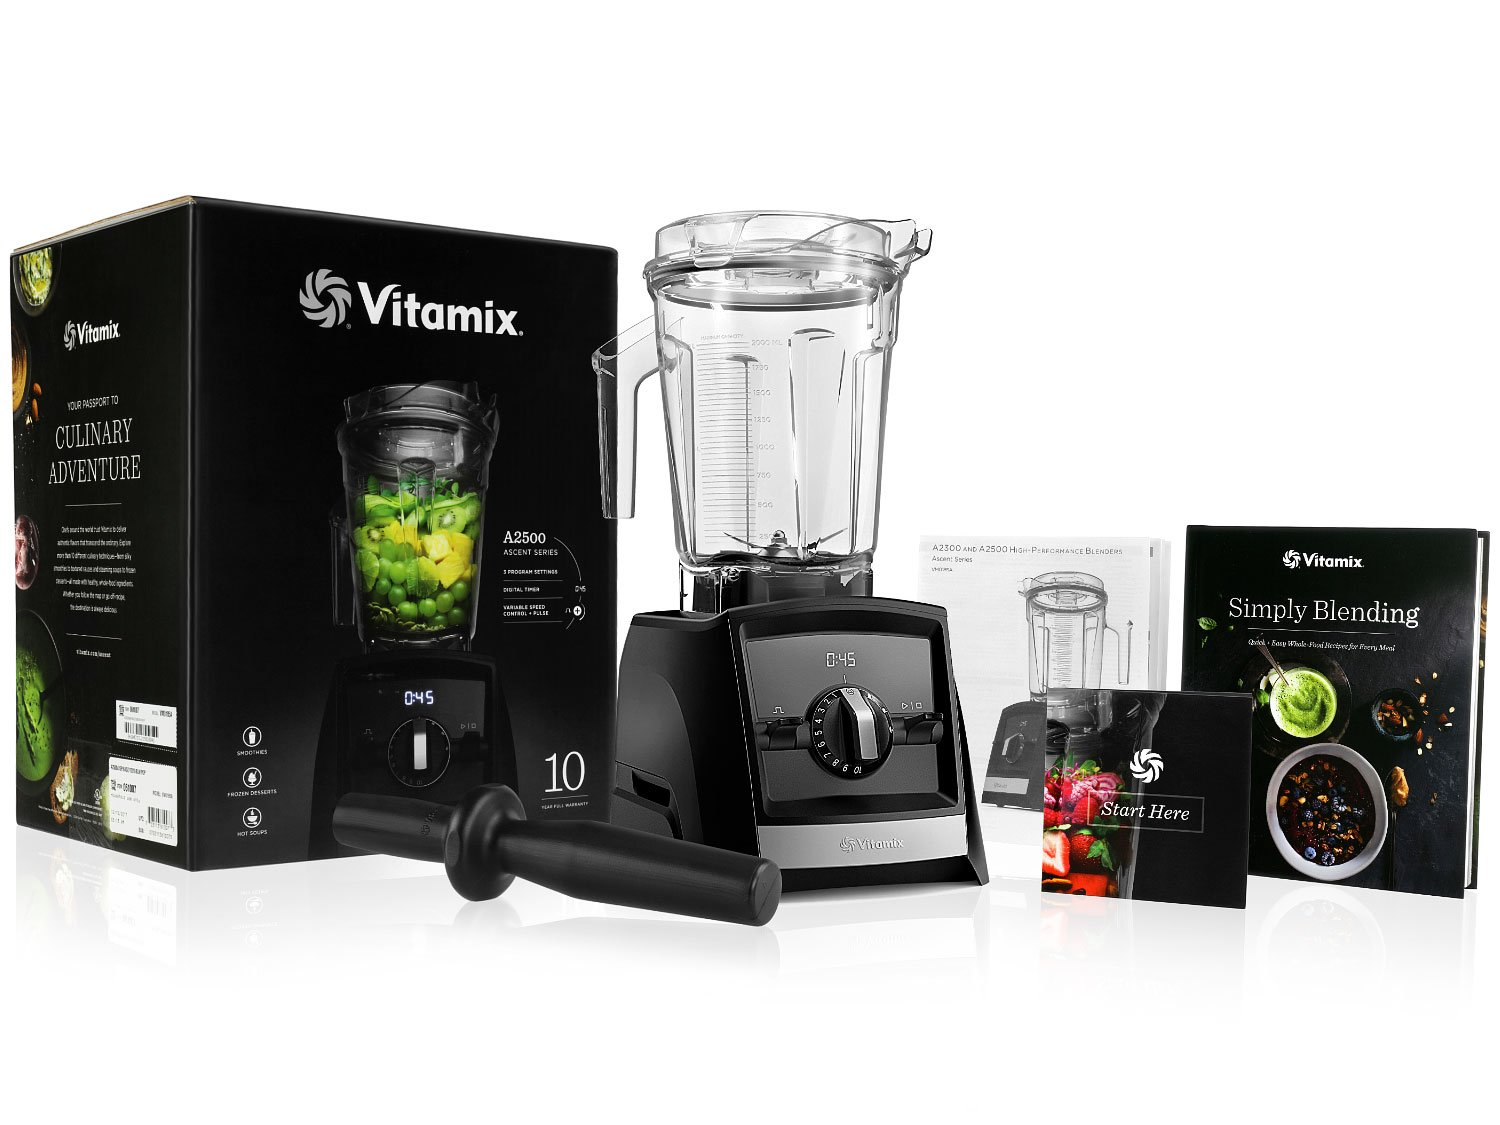 Vitamix A2500 Ascent Series Blender with 64-Ounce Container + Vitamix Simply Blending Blending Recipe Cookbook + Low-Profile Tamper + 10-Year Full Warranty - Black